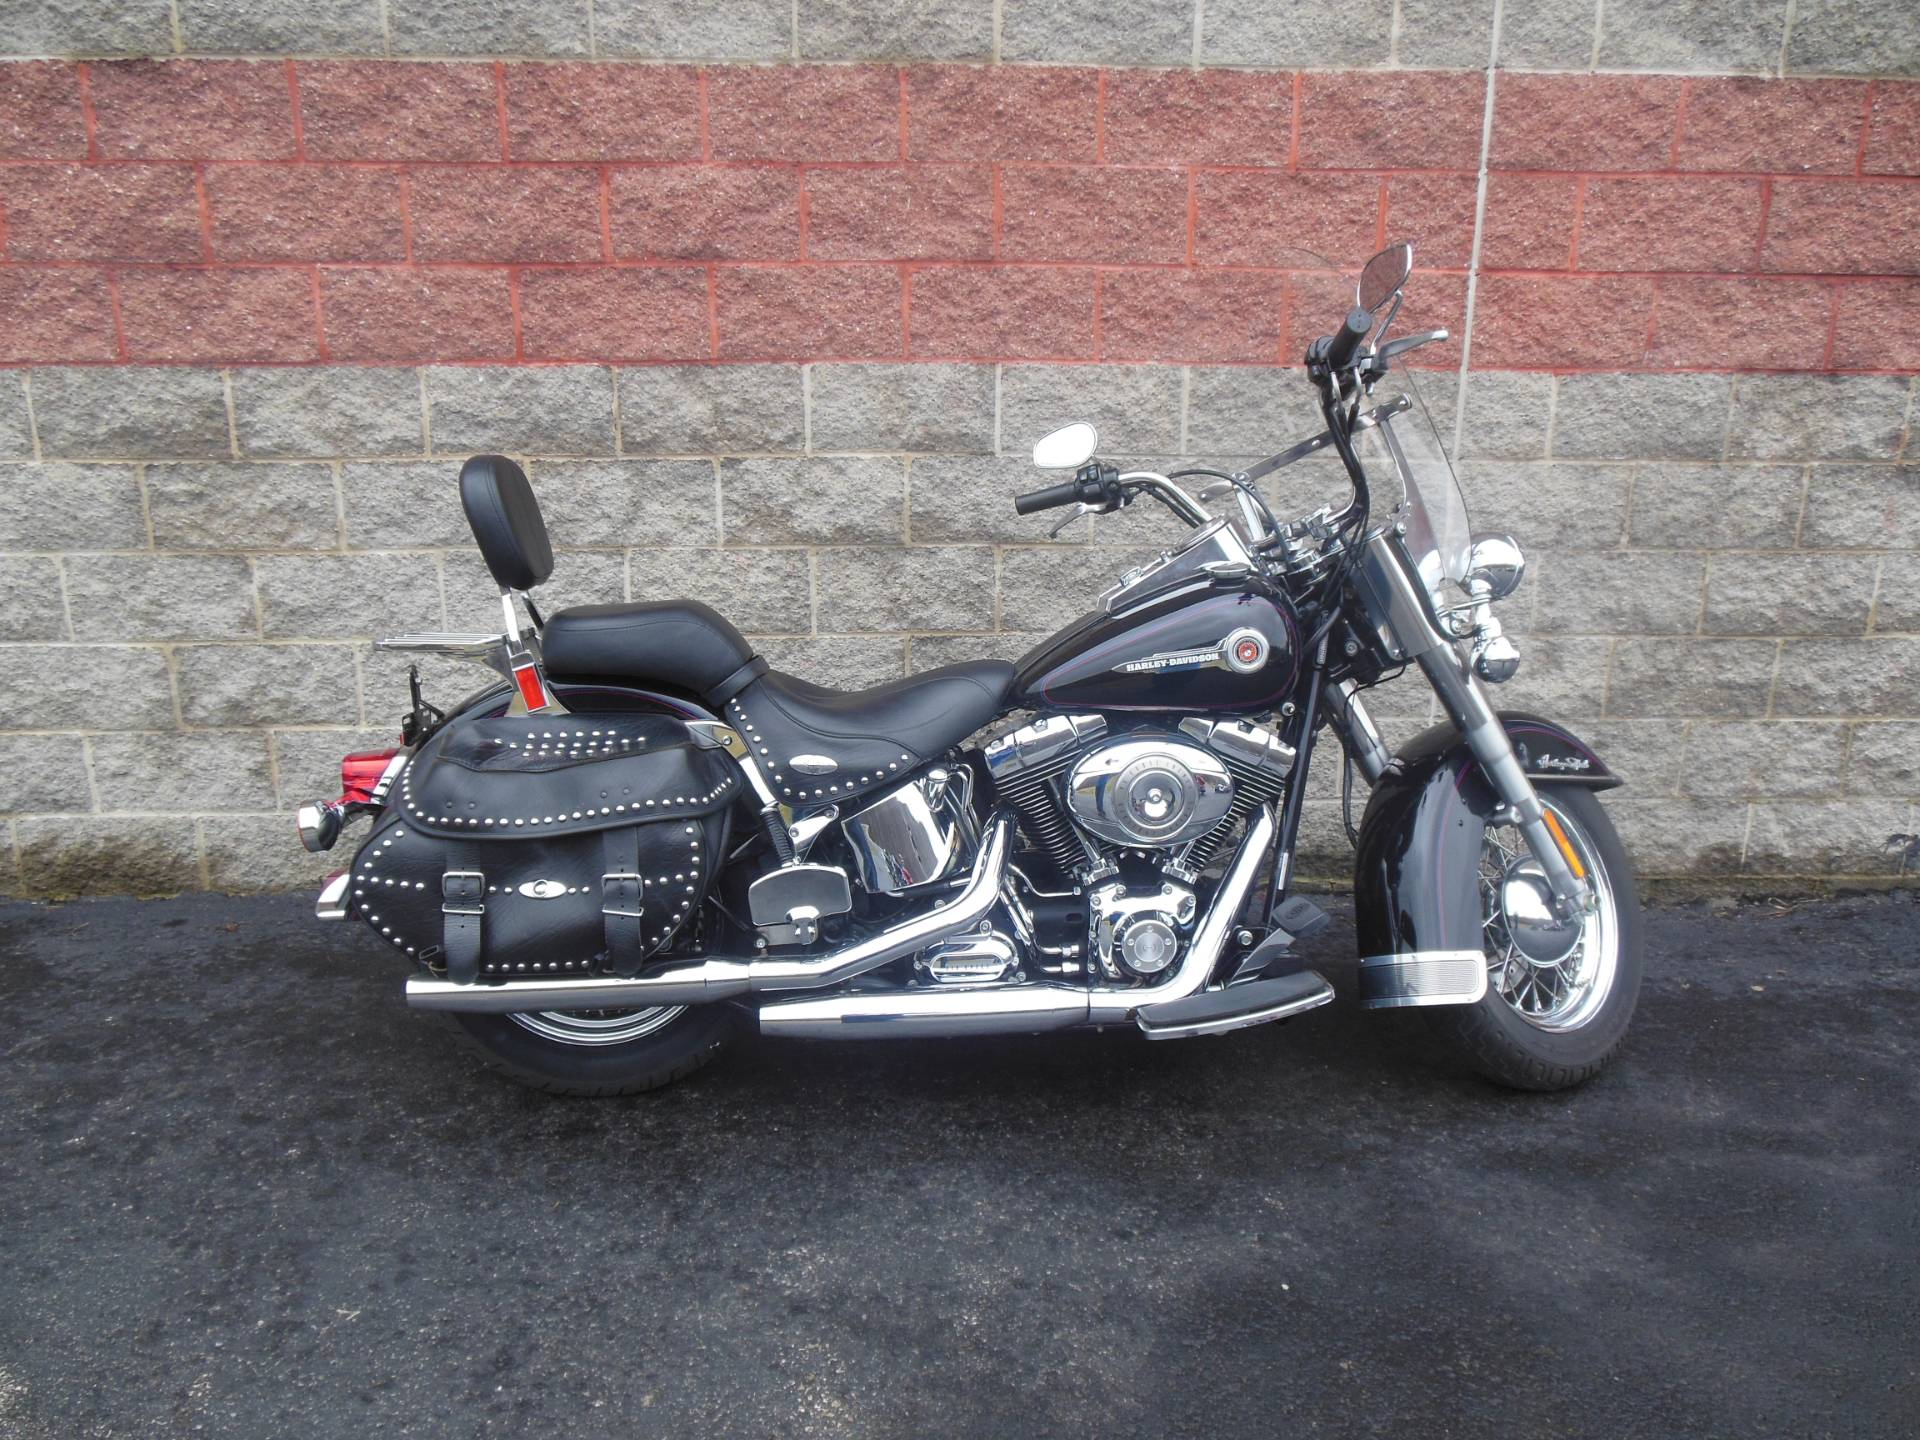 used 2007 harley davidson flstc heritage softail classic motorcycles in galeton pa. Black Bedroom Furniture Sets. Home Design Ideas